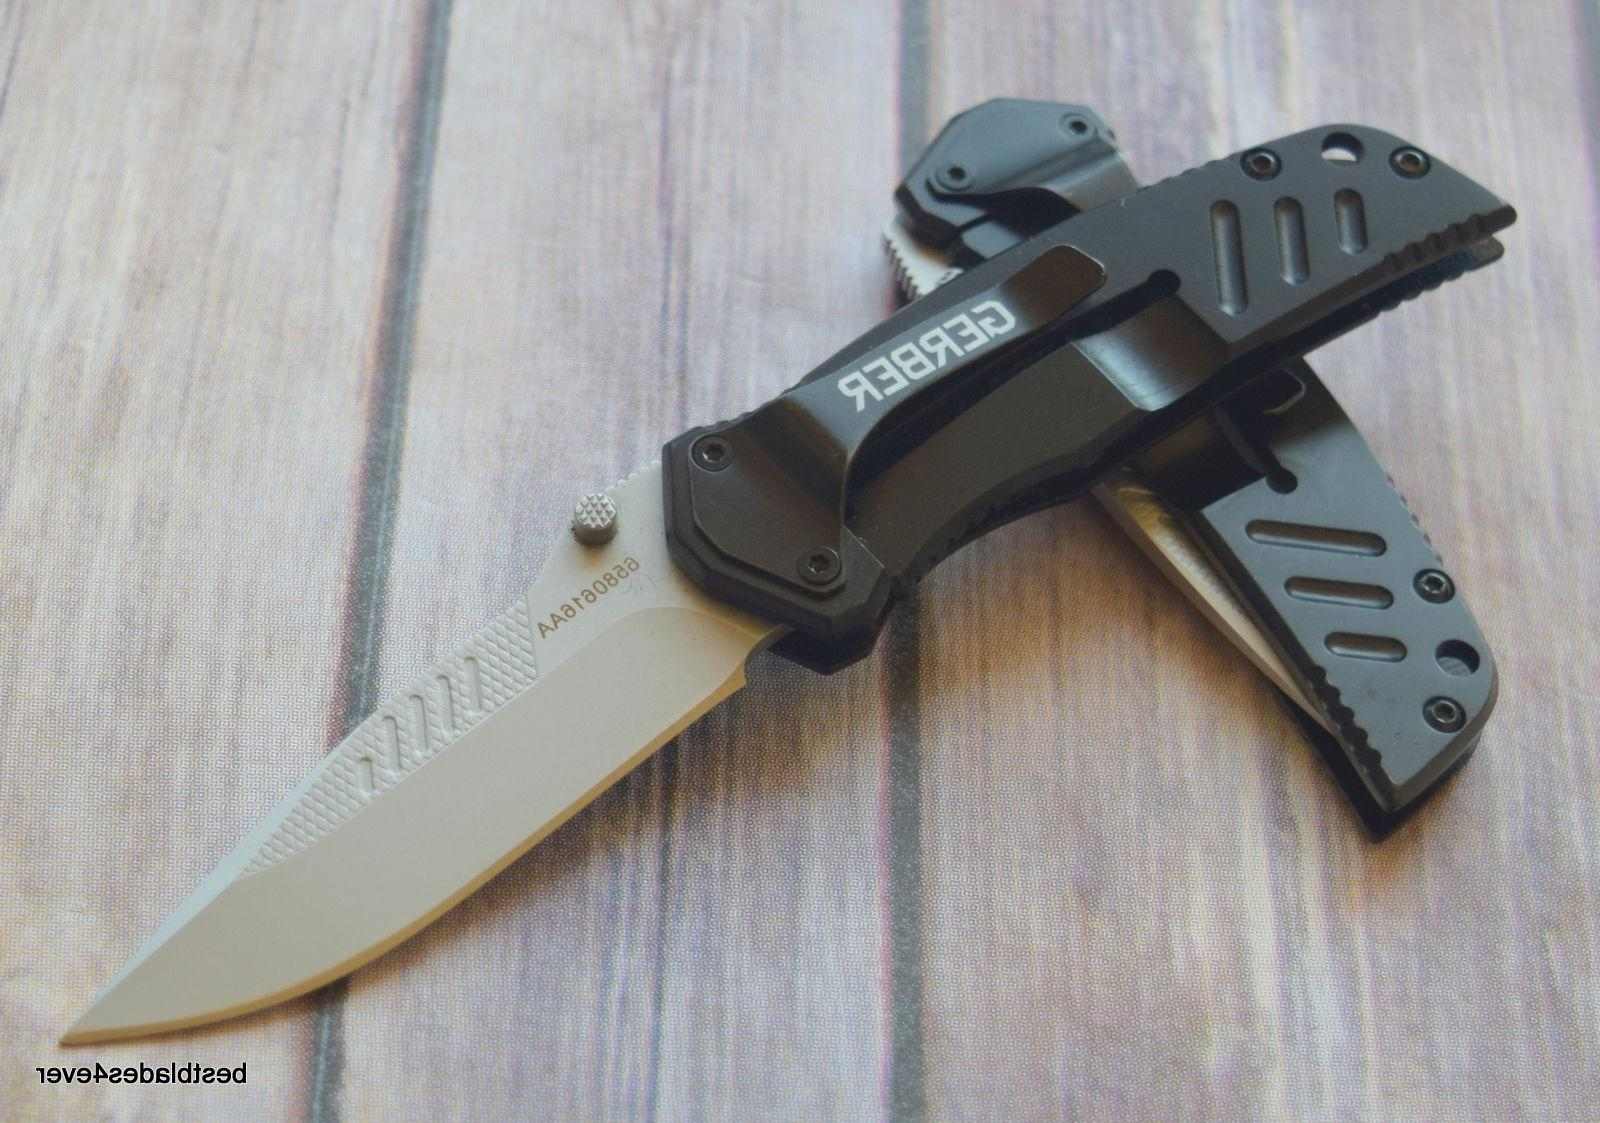 6.2 INCH G-10 SWAGGER FRAME-LOCK KNIFE CLIP